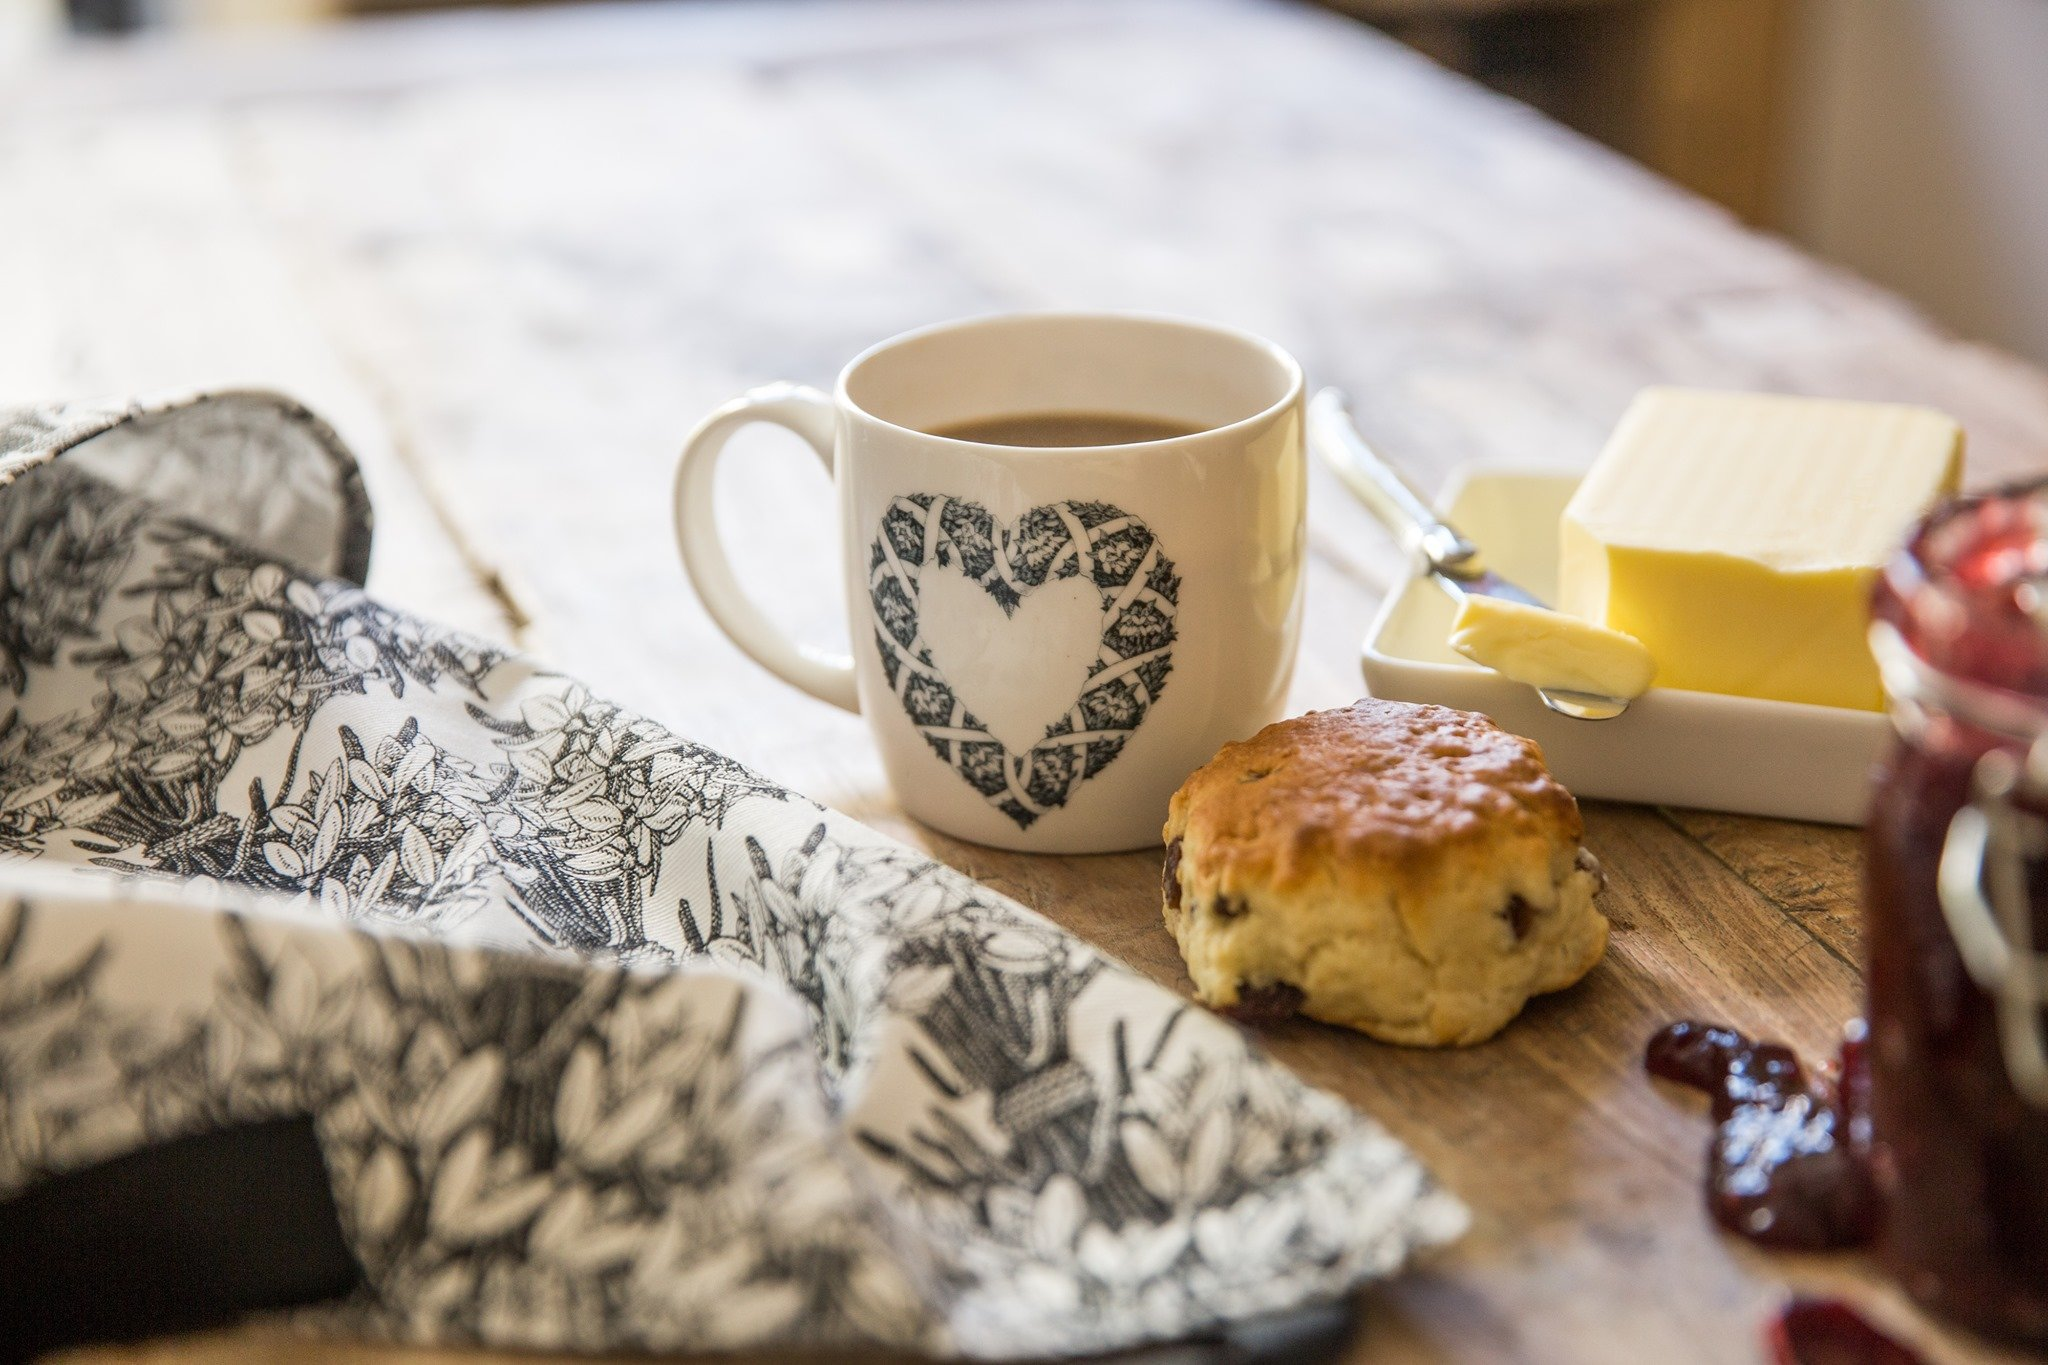 Crumble Cottage Gifts, Kitchen & Homeware - Gallery Image 03